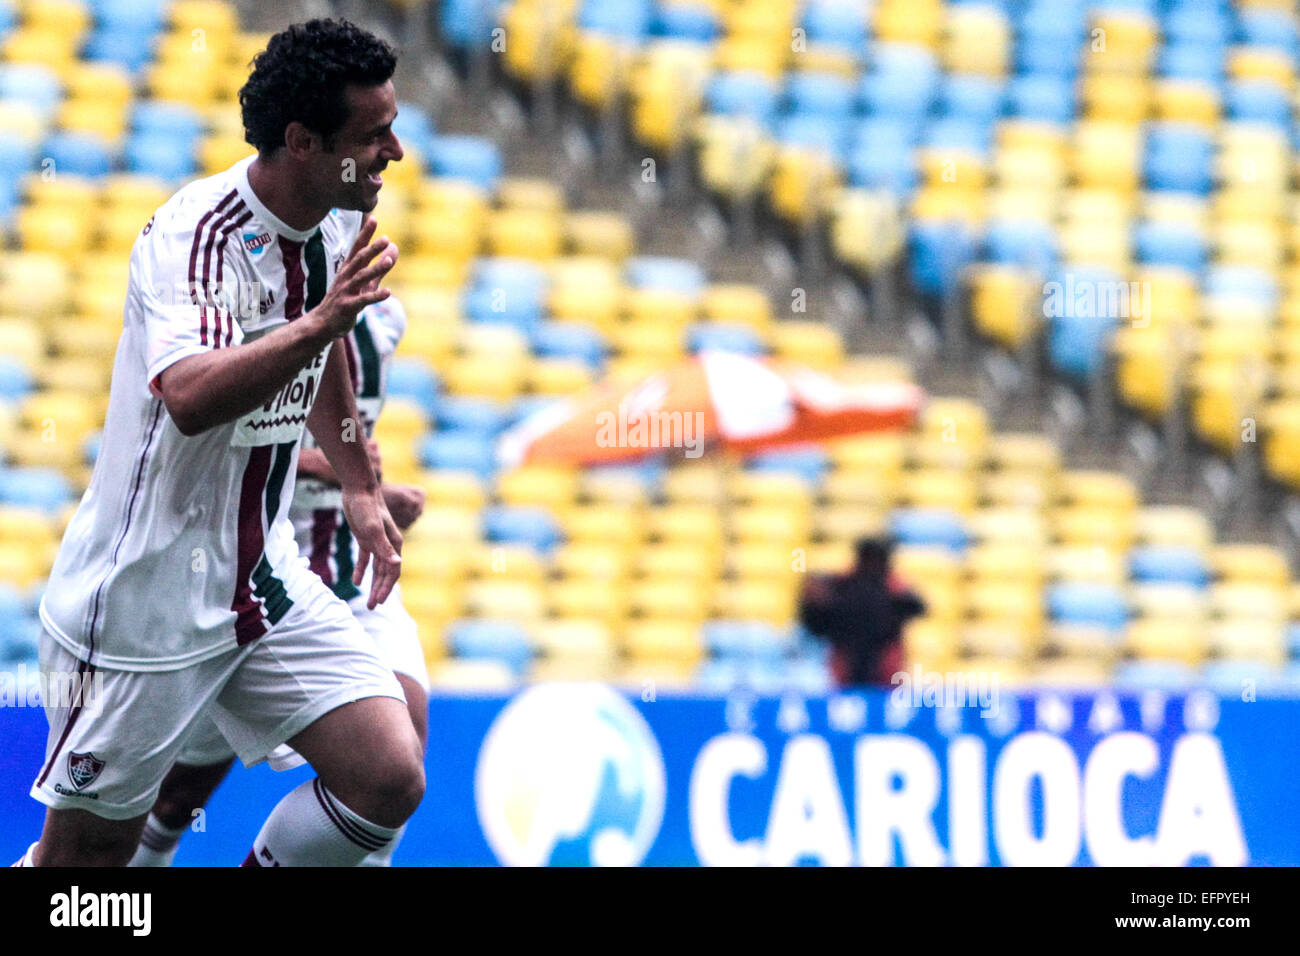 Rio de Janeiro, Brazil. 8th February, 2015. Fred, foward of Fluminense, during the match with Bangu FC on Sunday Stock Photo